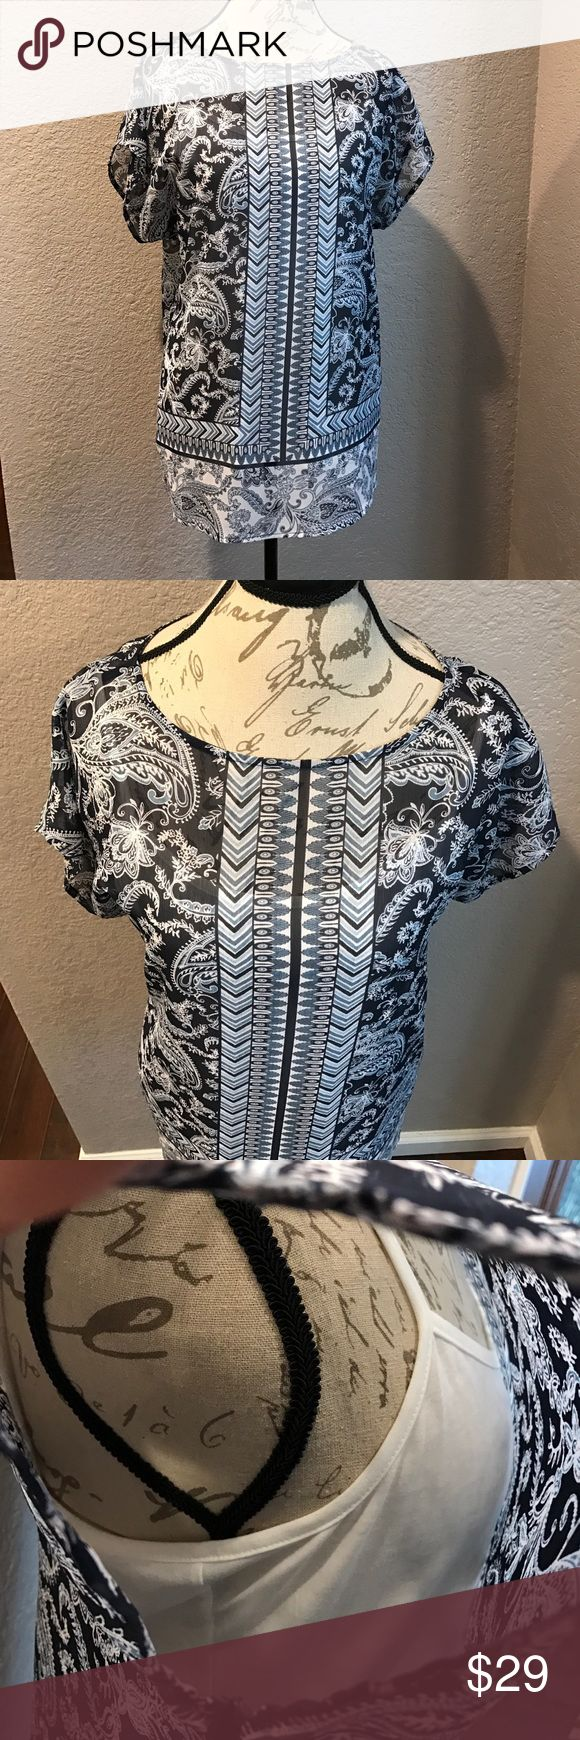 Liz Claiborne New without tags unworn. Sheer tunic over white Cami. Blue and white tones. So much more beautiful than on this manikin. Due to the size being a large, it looks different on a size small manikin in a person Liz Claiborne Tops